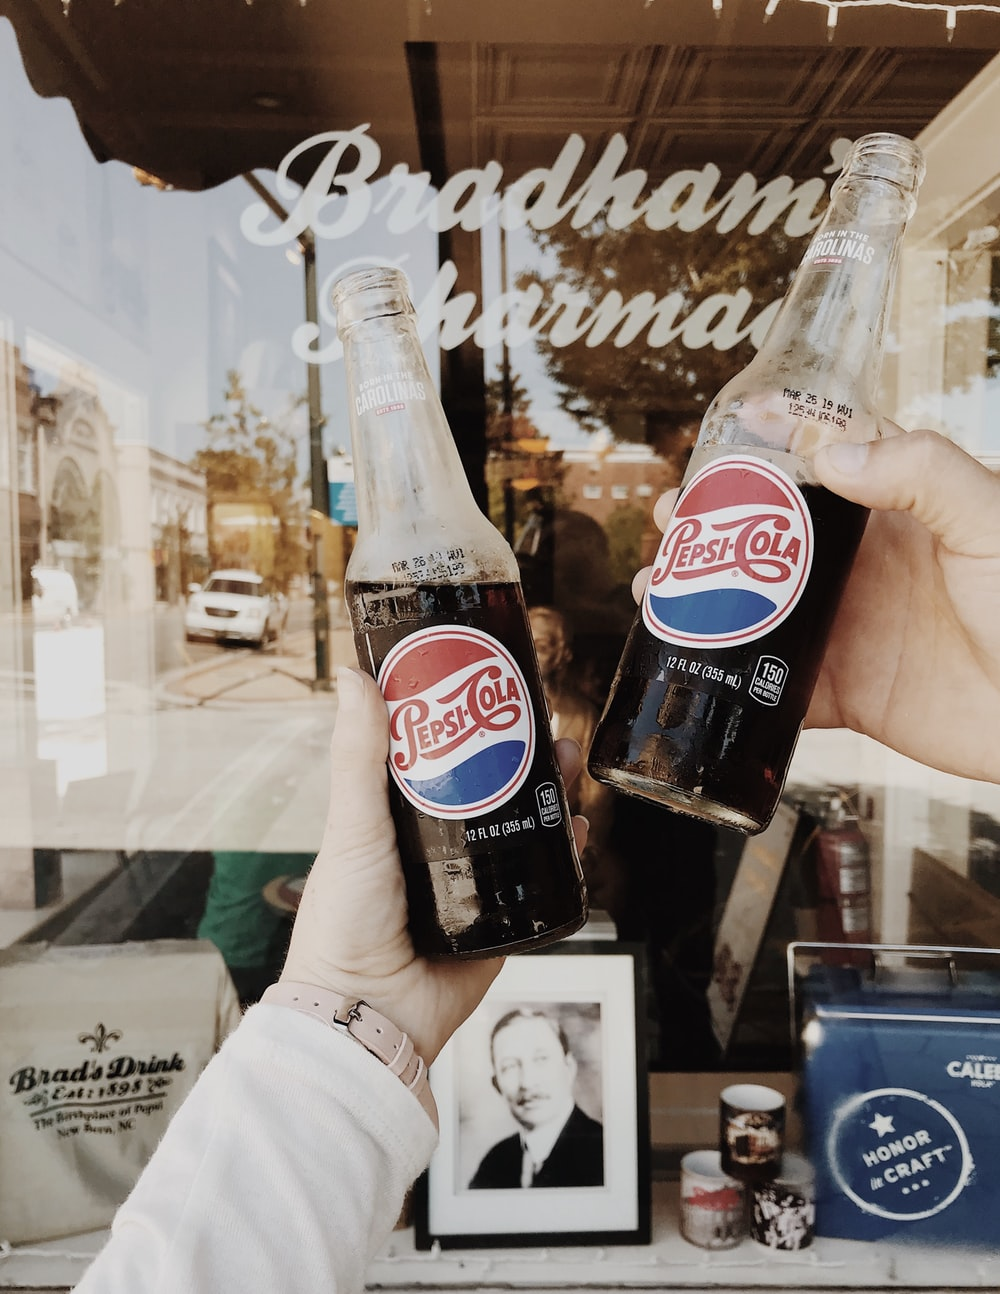 person holding Pepsi Cola soda bottles